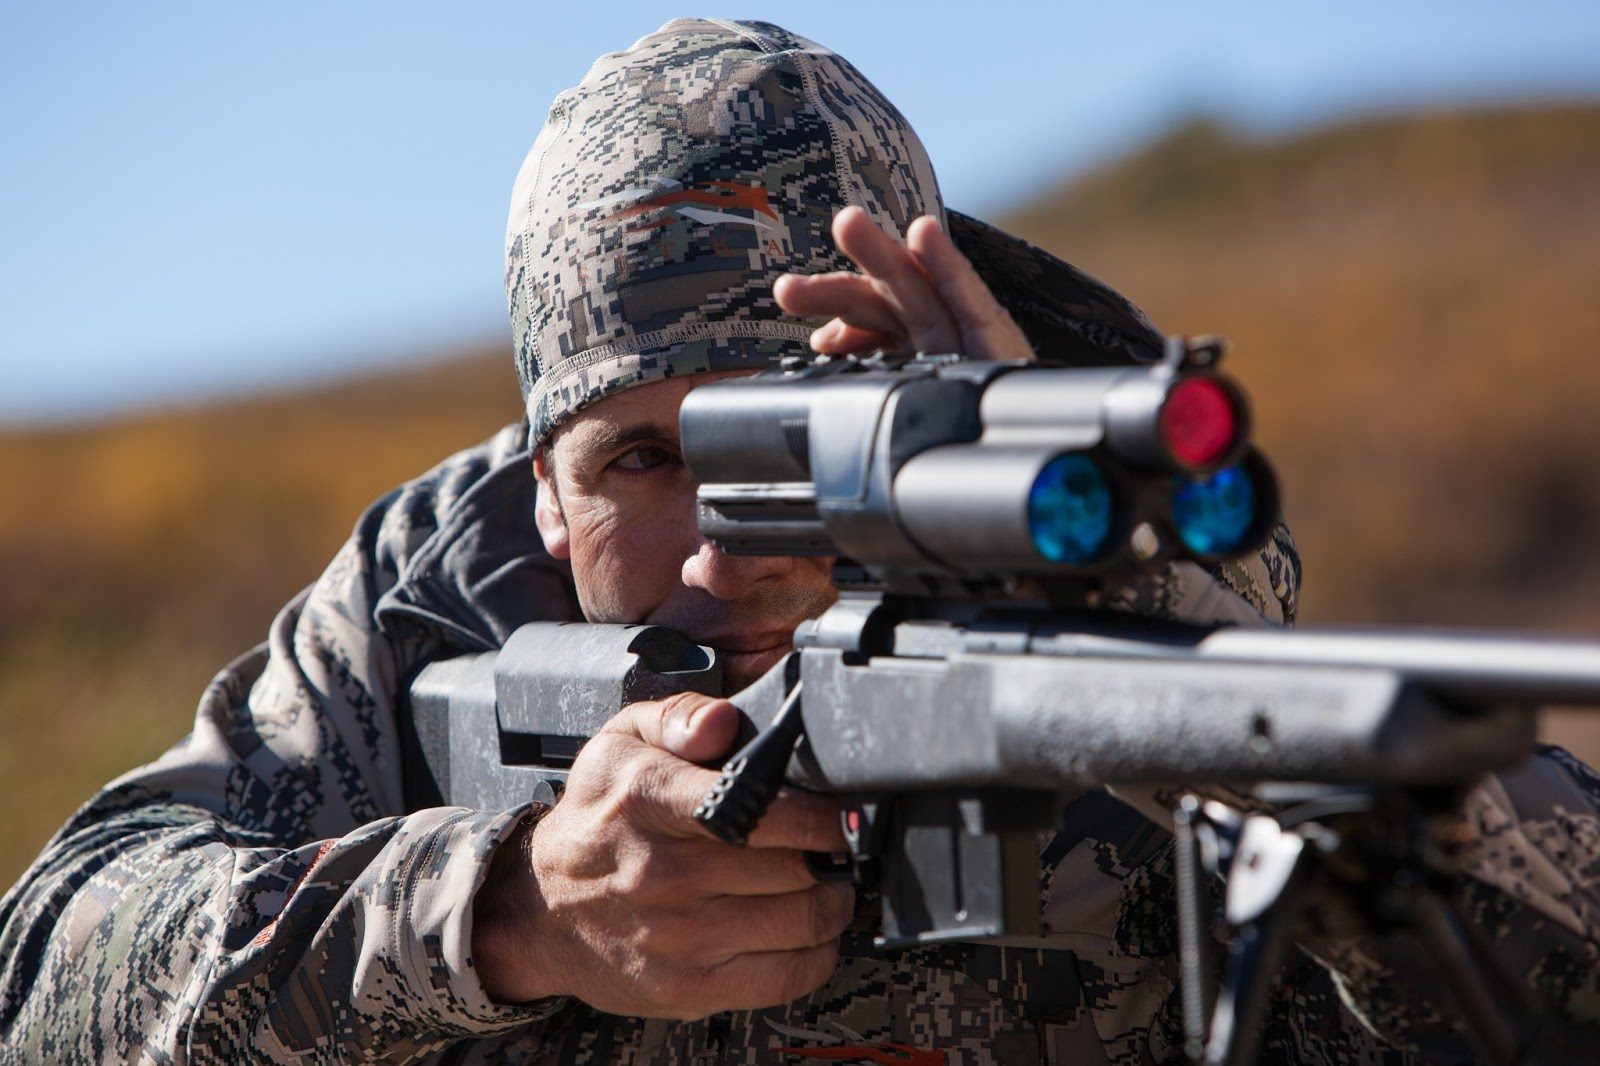 Tracking Point's self-aiming rifles can be hacked